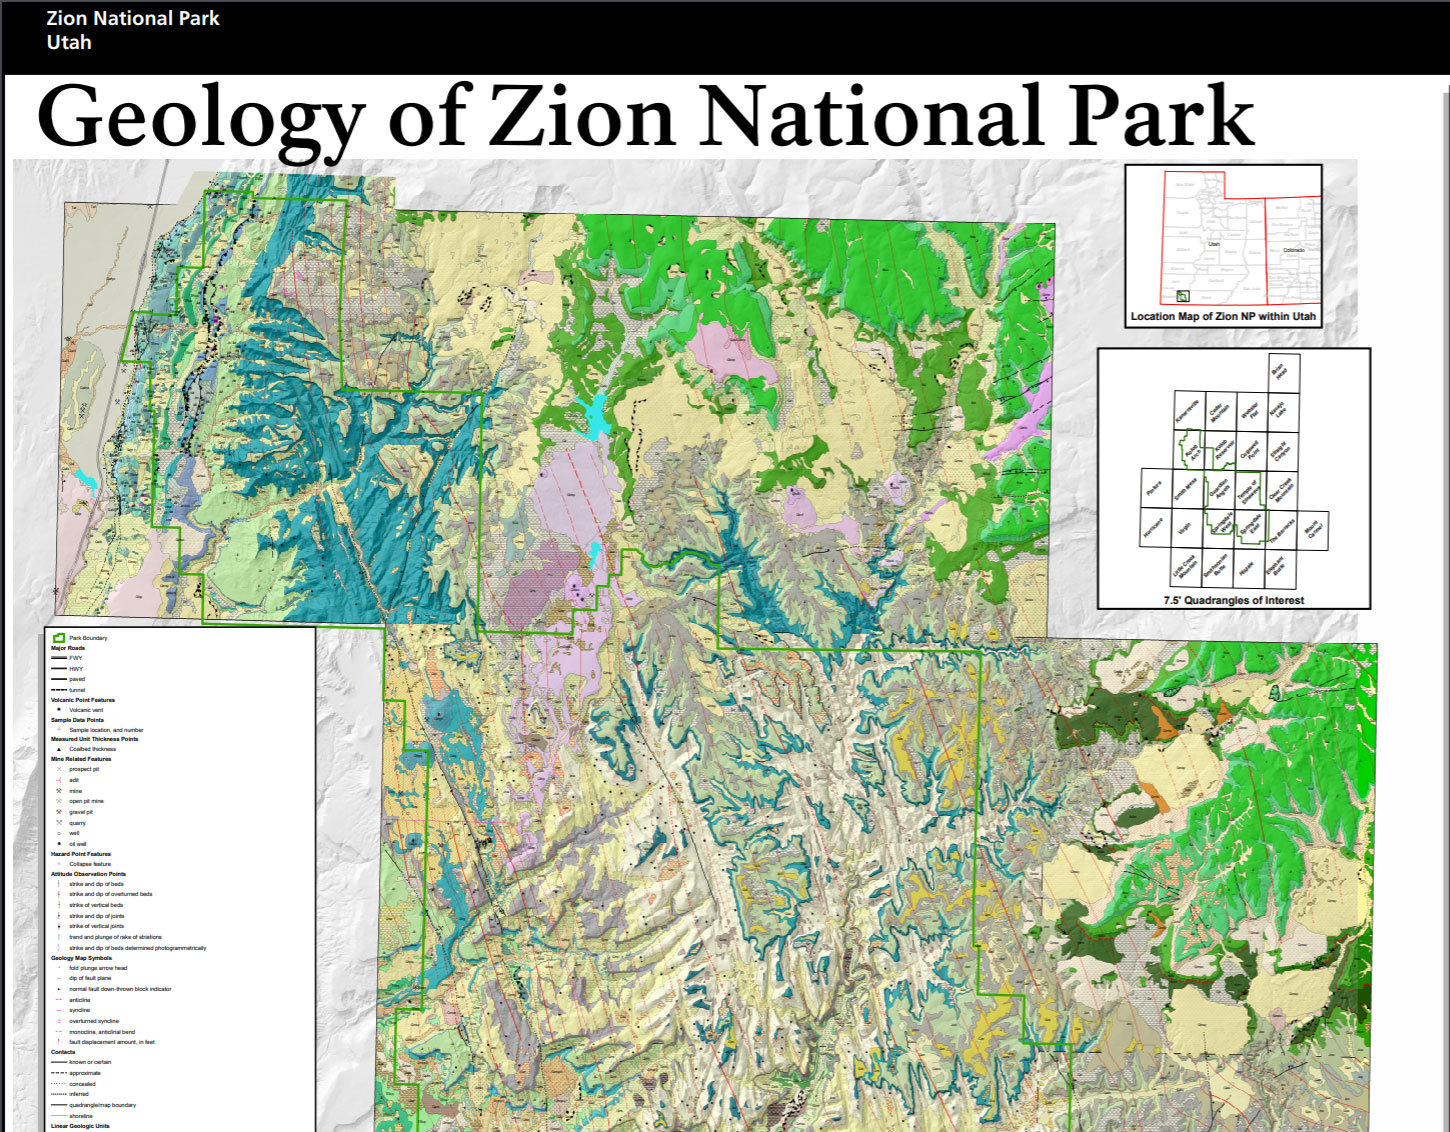 NPS Geodiversity Atlas—Zion National Park, Utah (U.S. National Park on redwood national park map, symbol national park on map, angels landing trail map, acadia national park on a map, bryce canyon np map, canyonlands national park road map, city of rocks national reserve map, bryce canyon road map, sequoia national park map, grand canyon map, grand staircase escalante national monument map, zion subway map, salt lake city map, death valley map, monument valley map, st. george map, antelope canyon map, denali national park and preserve map, arches national park topographic map, lake tahoe map,